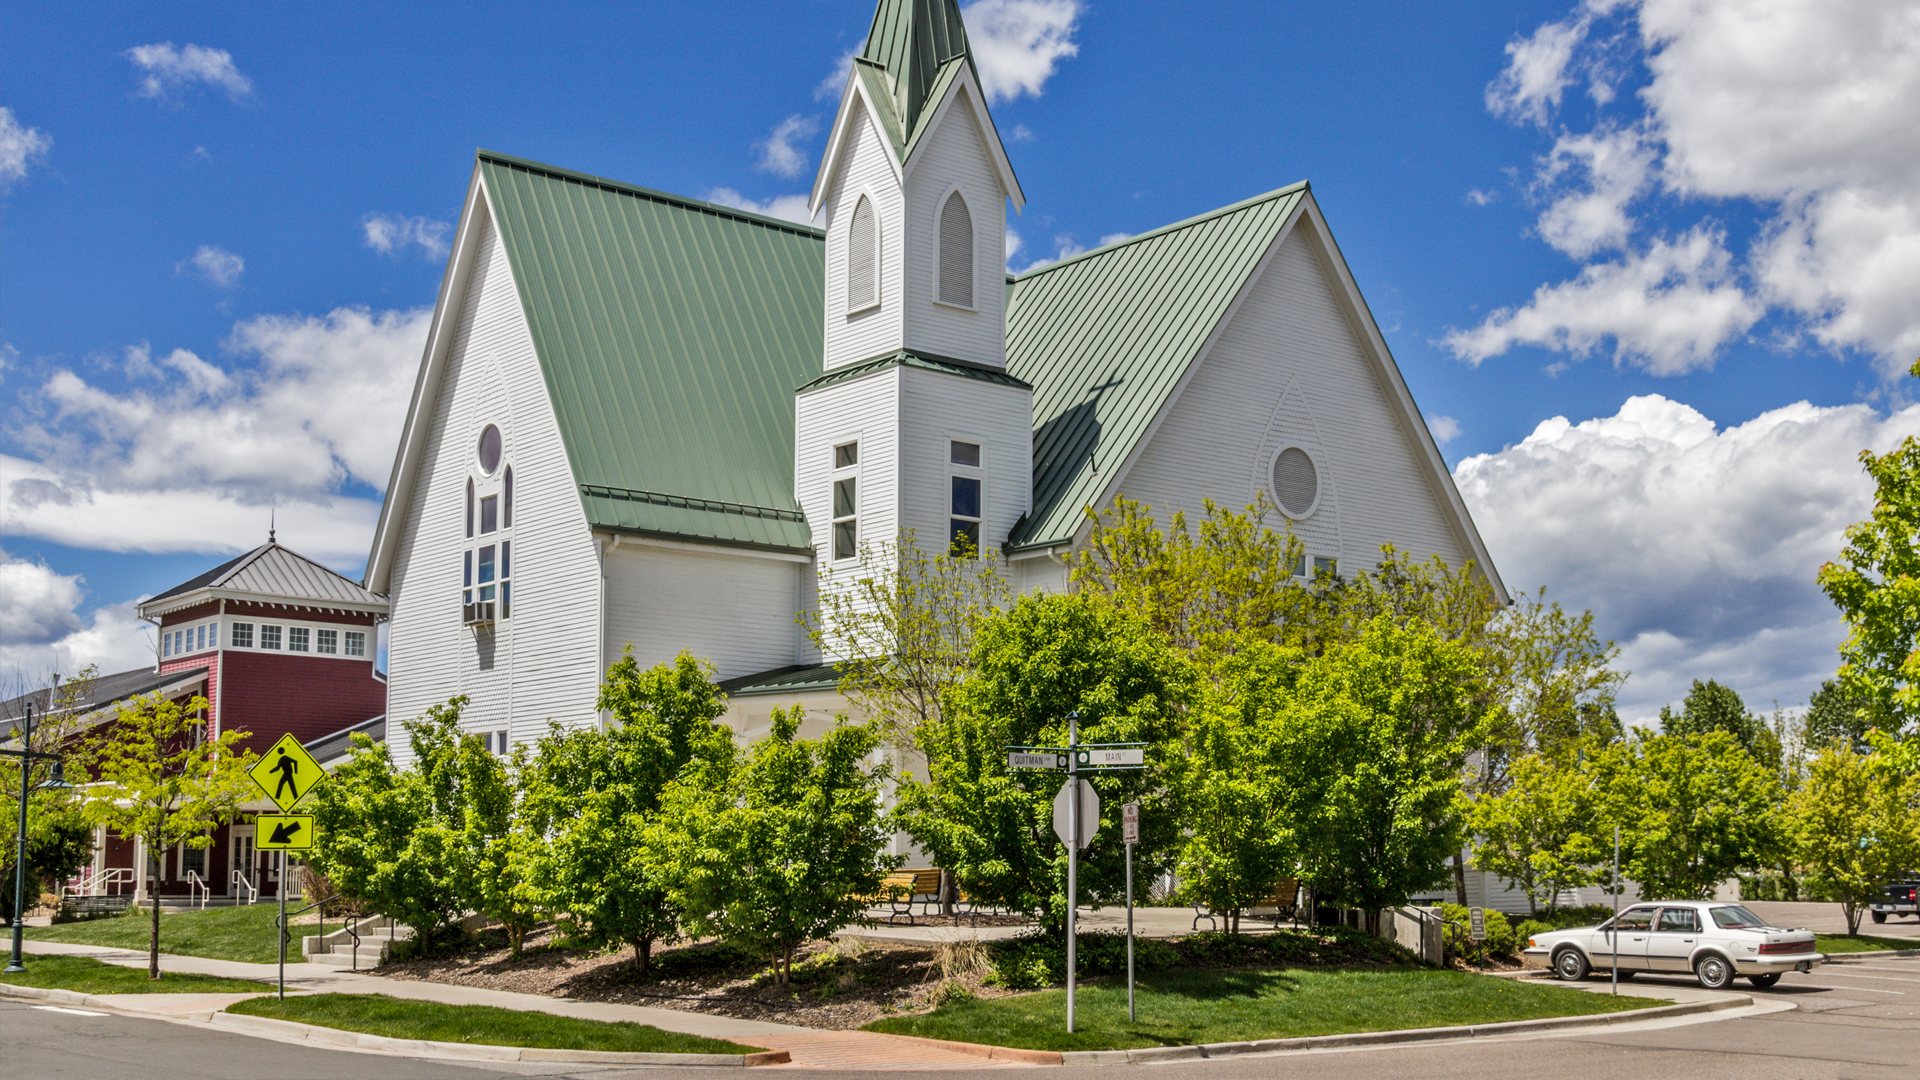 <p>Life at Bradburn Village includes churches, the recently built Adams County Charter School serving middle and high school students and two separate day care facilities.</p>